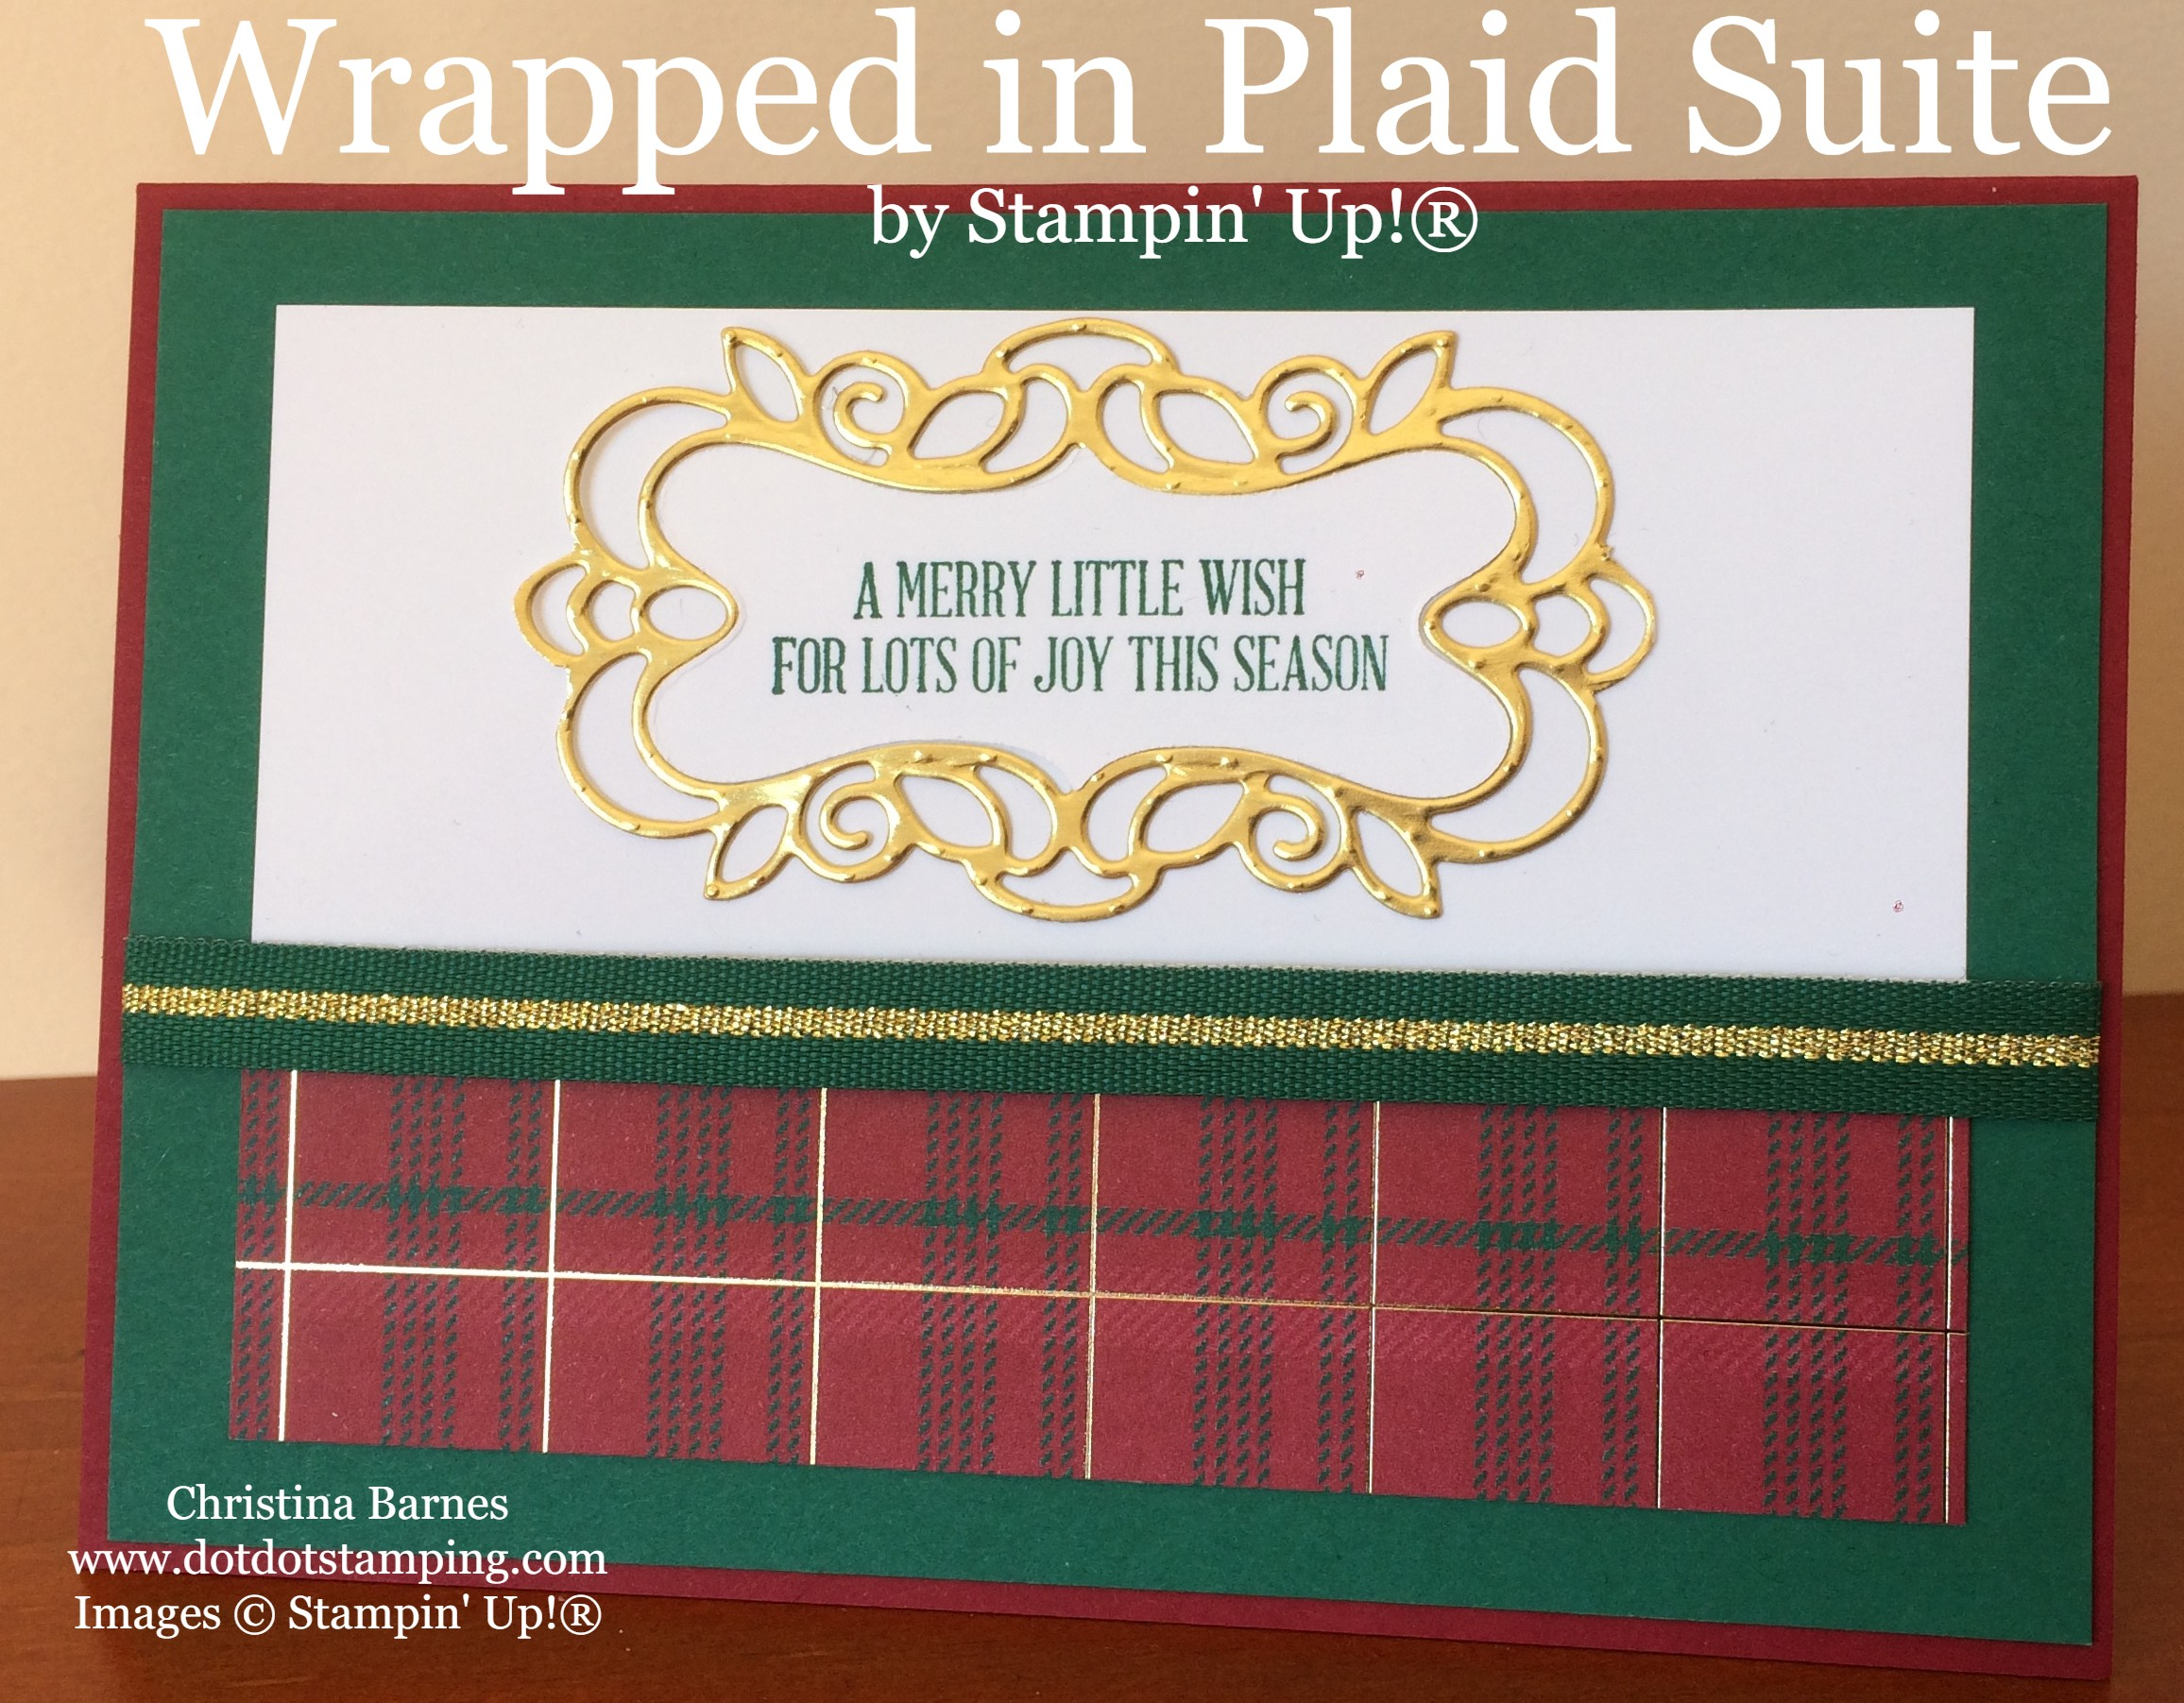 Wrapped in Plaid Suite 2019 Holiday Catalogue Christina Barnes Dot Dot Stamping